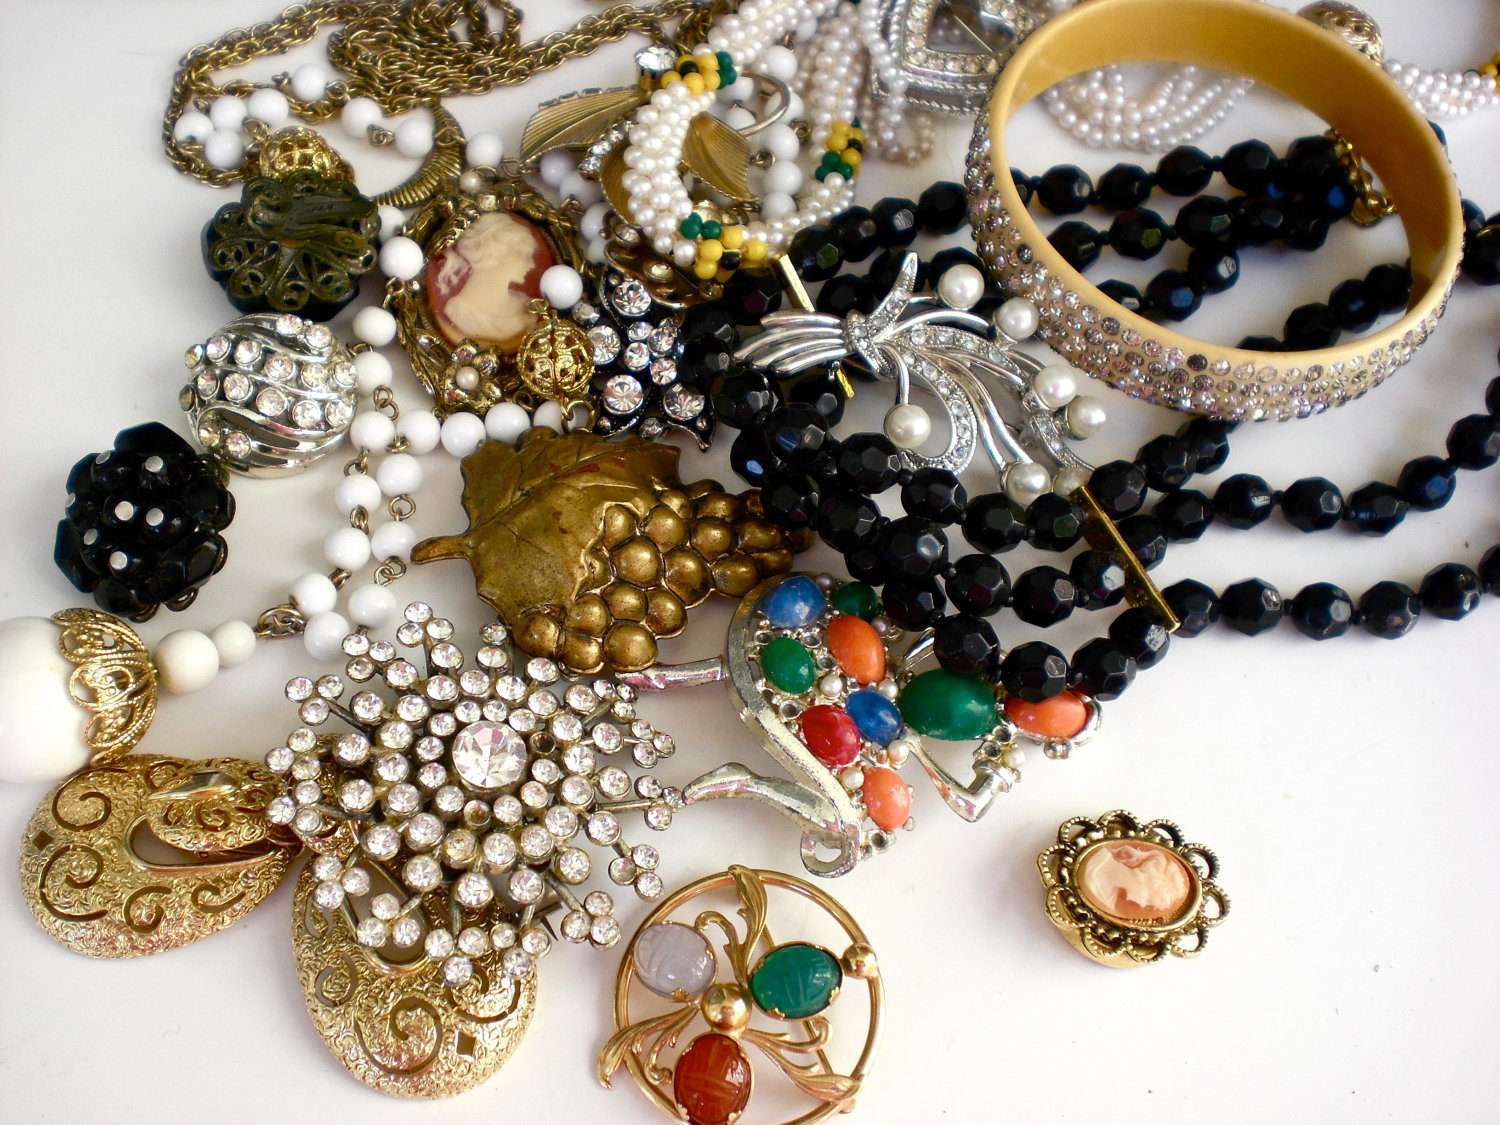 Prom Accessories and Jewelry – Tips to Make Your Prom Shine